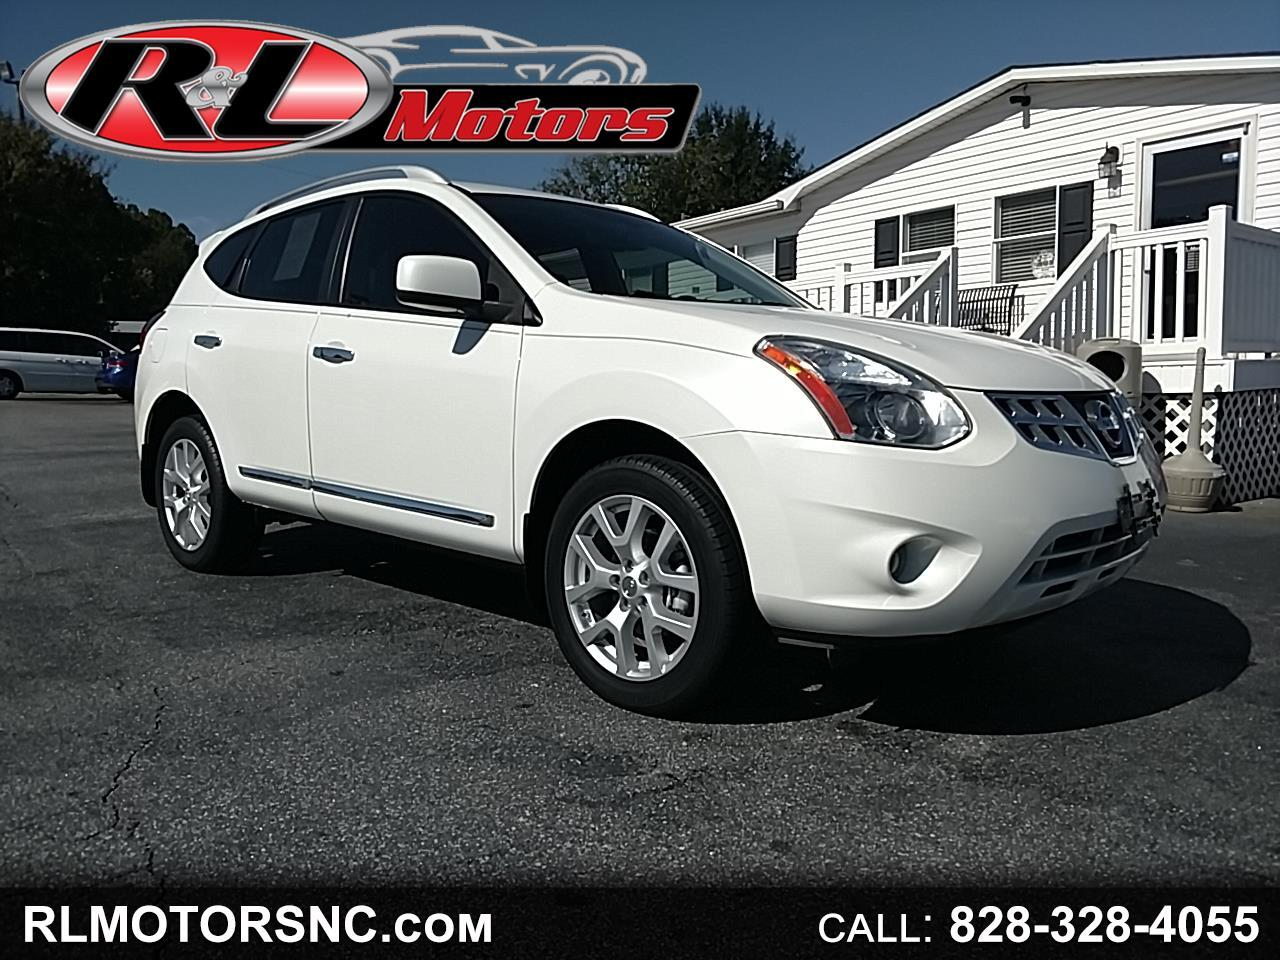 Buy Here Pay Here 2011 Nissan Rogue For Sale In Hickory Nc 28601 R